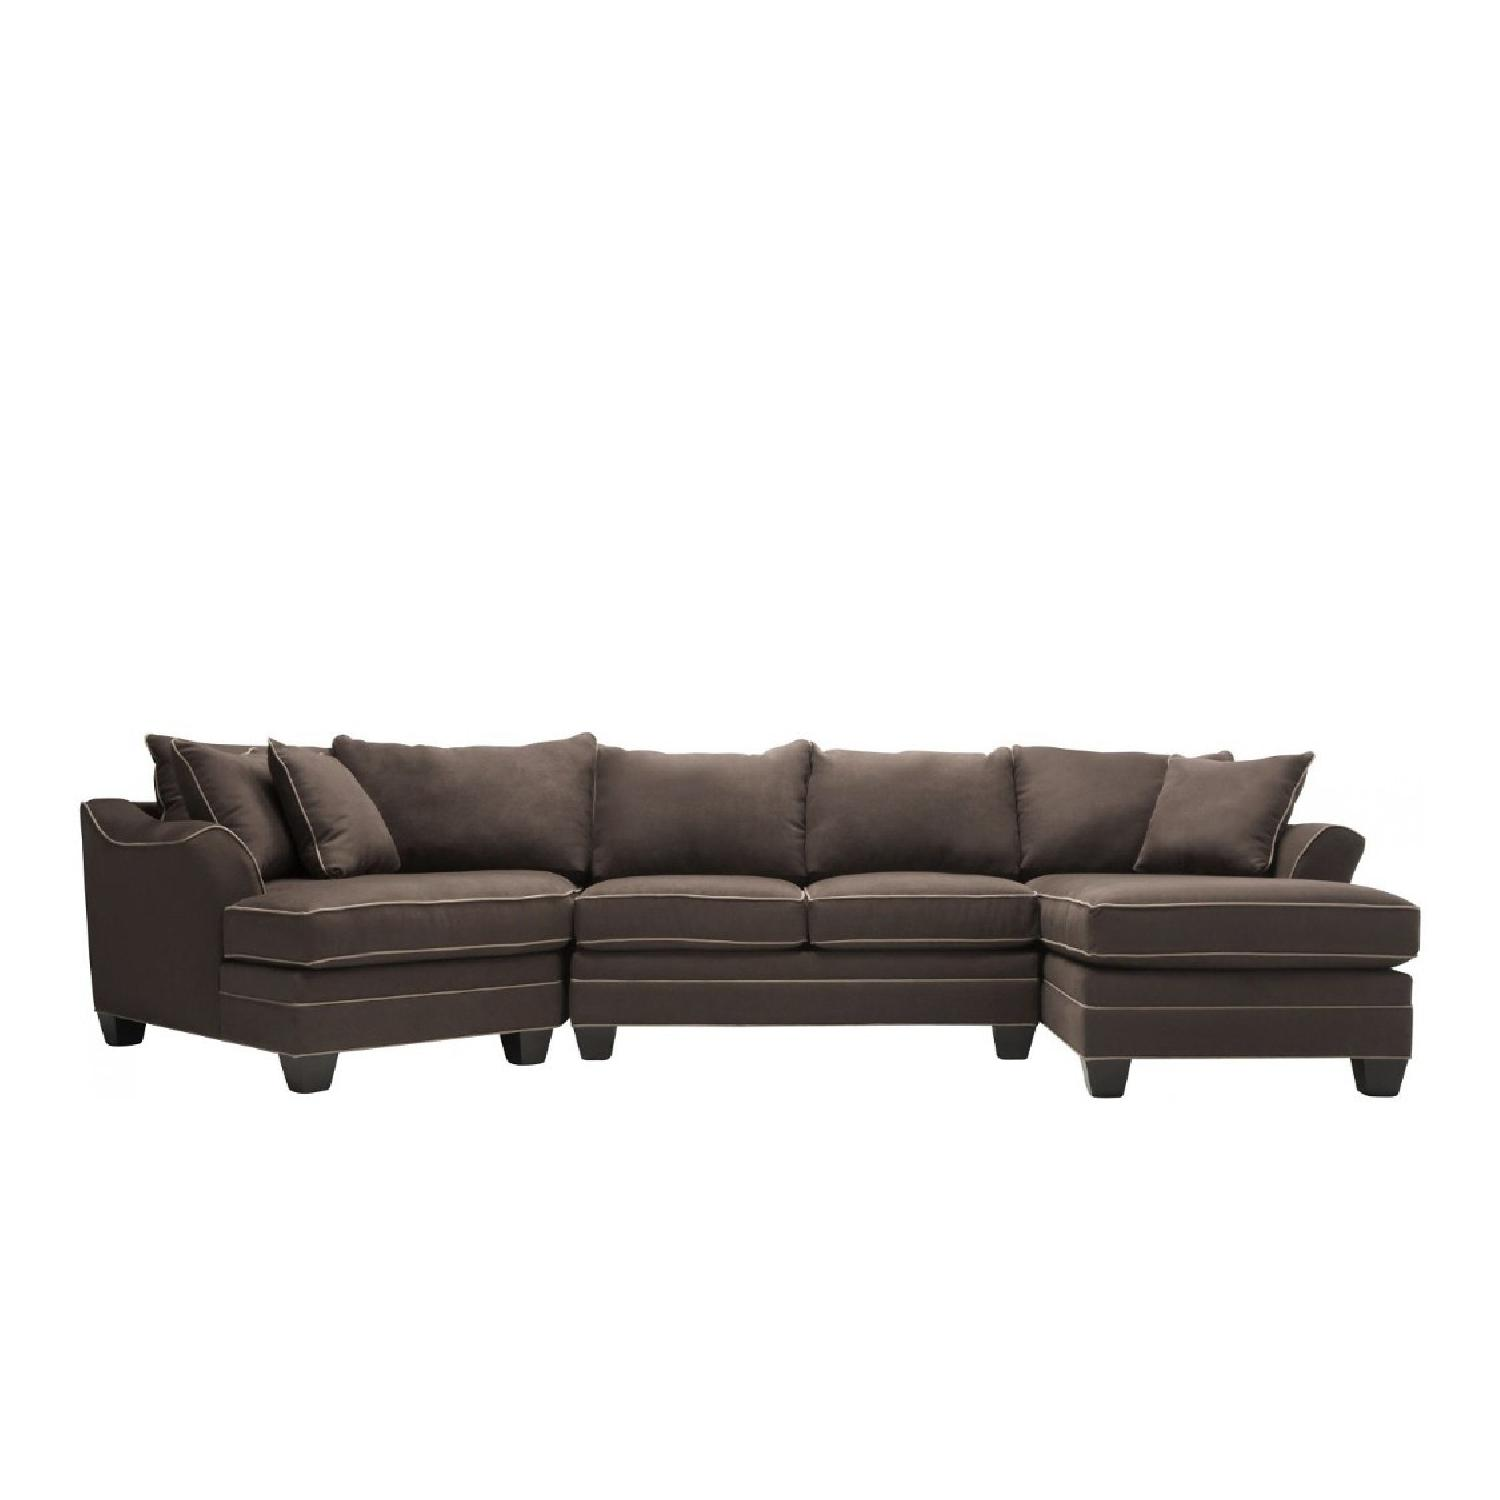 Raymour & Flanigan 3 Piece Sectional Sofa